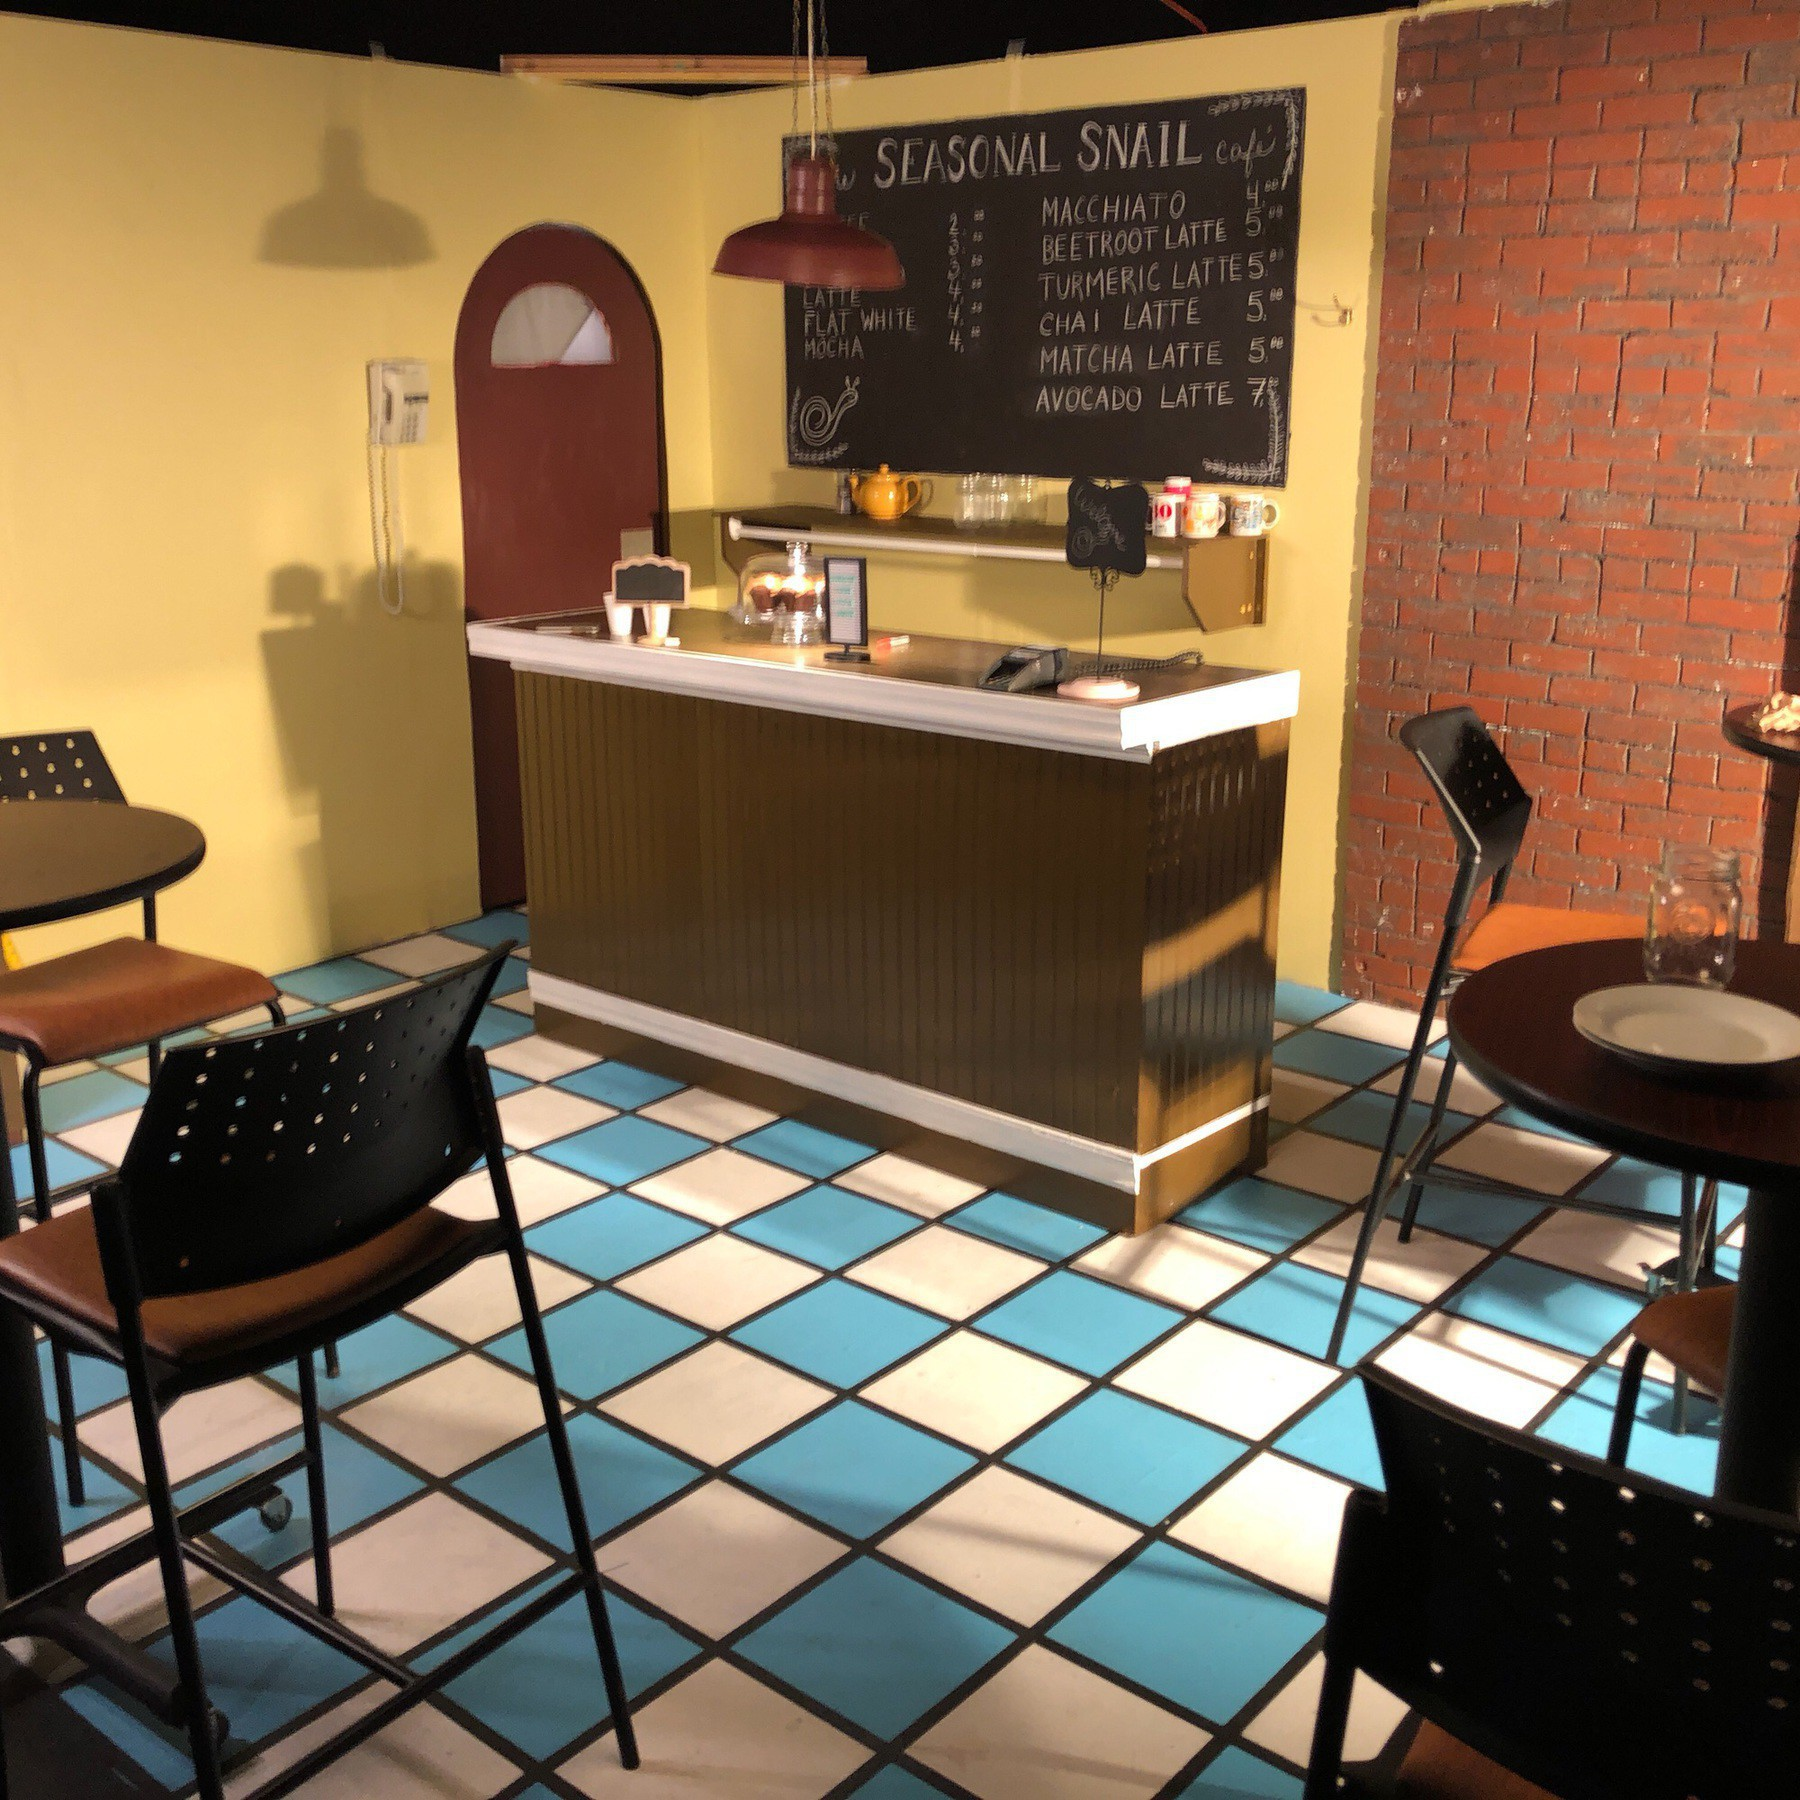 Student film cafe set.